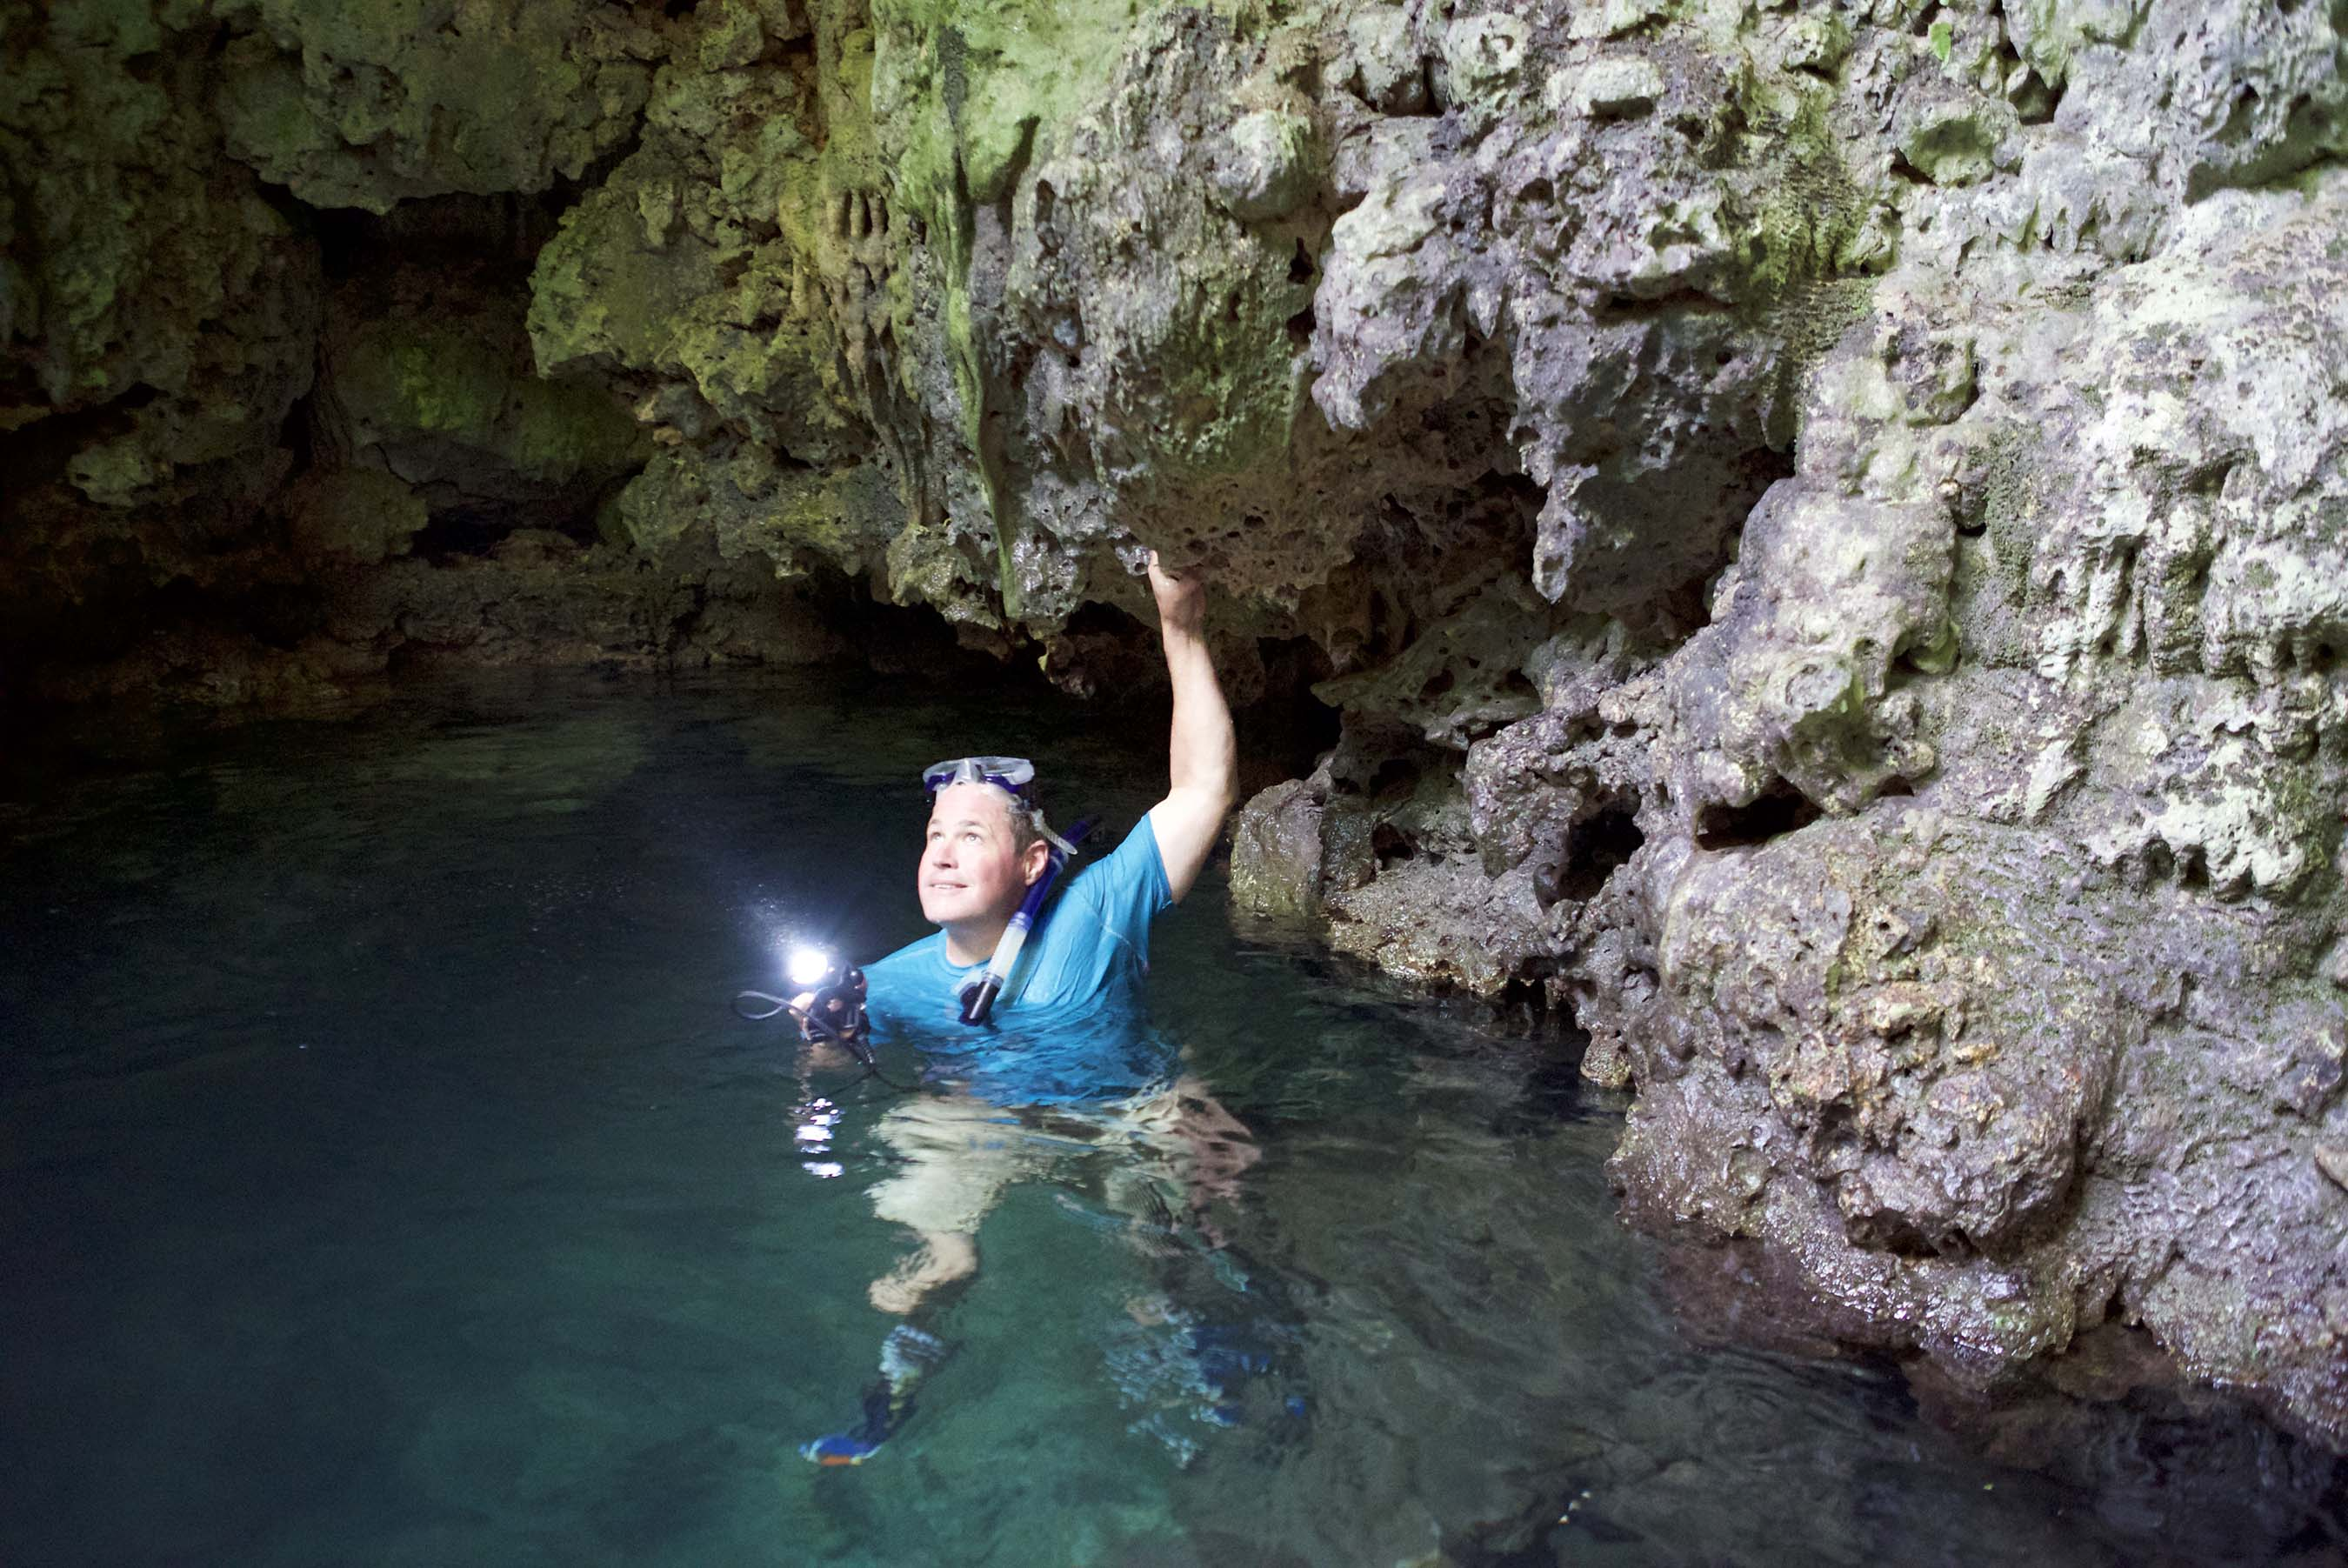 Jeff Corwin exploring caves for amber in Puerto Plata, Dominican Republic